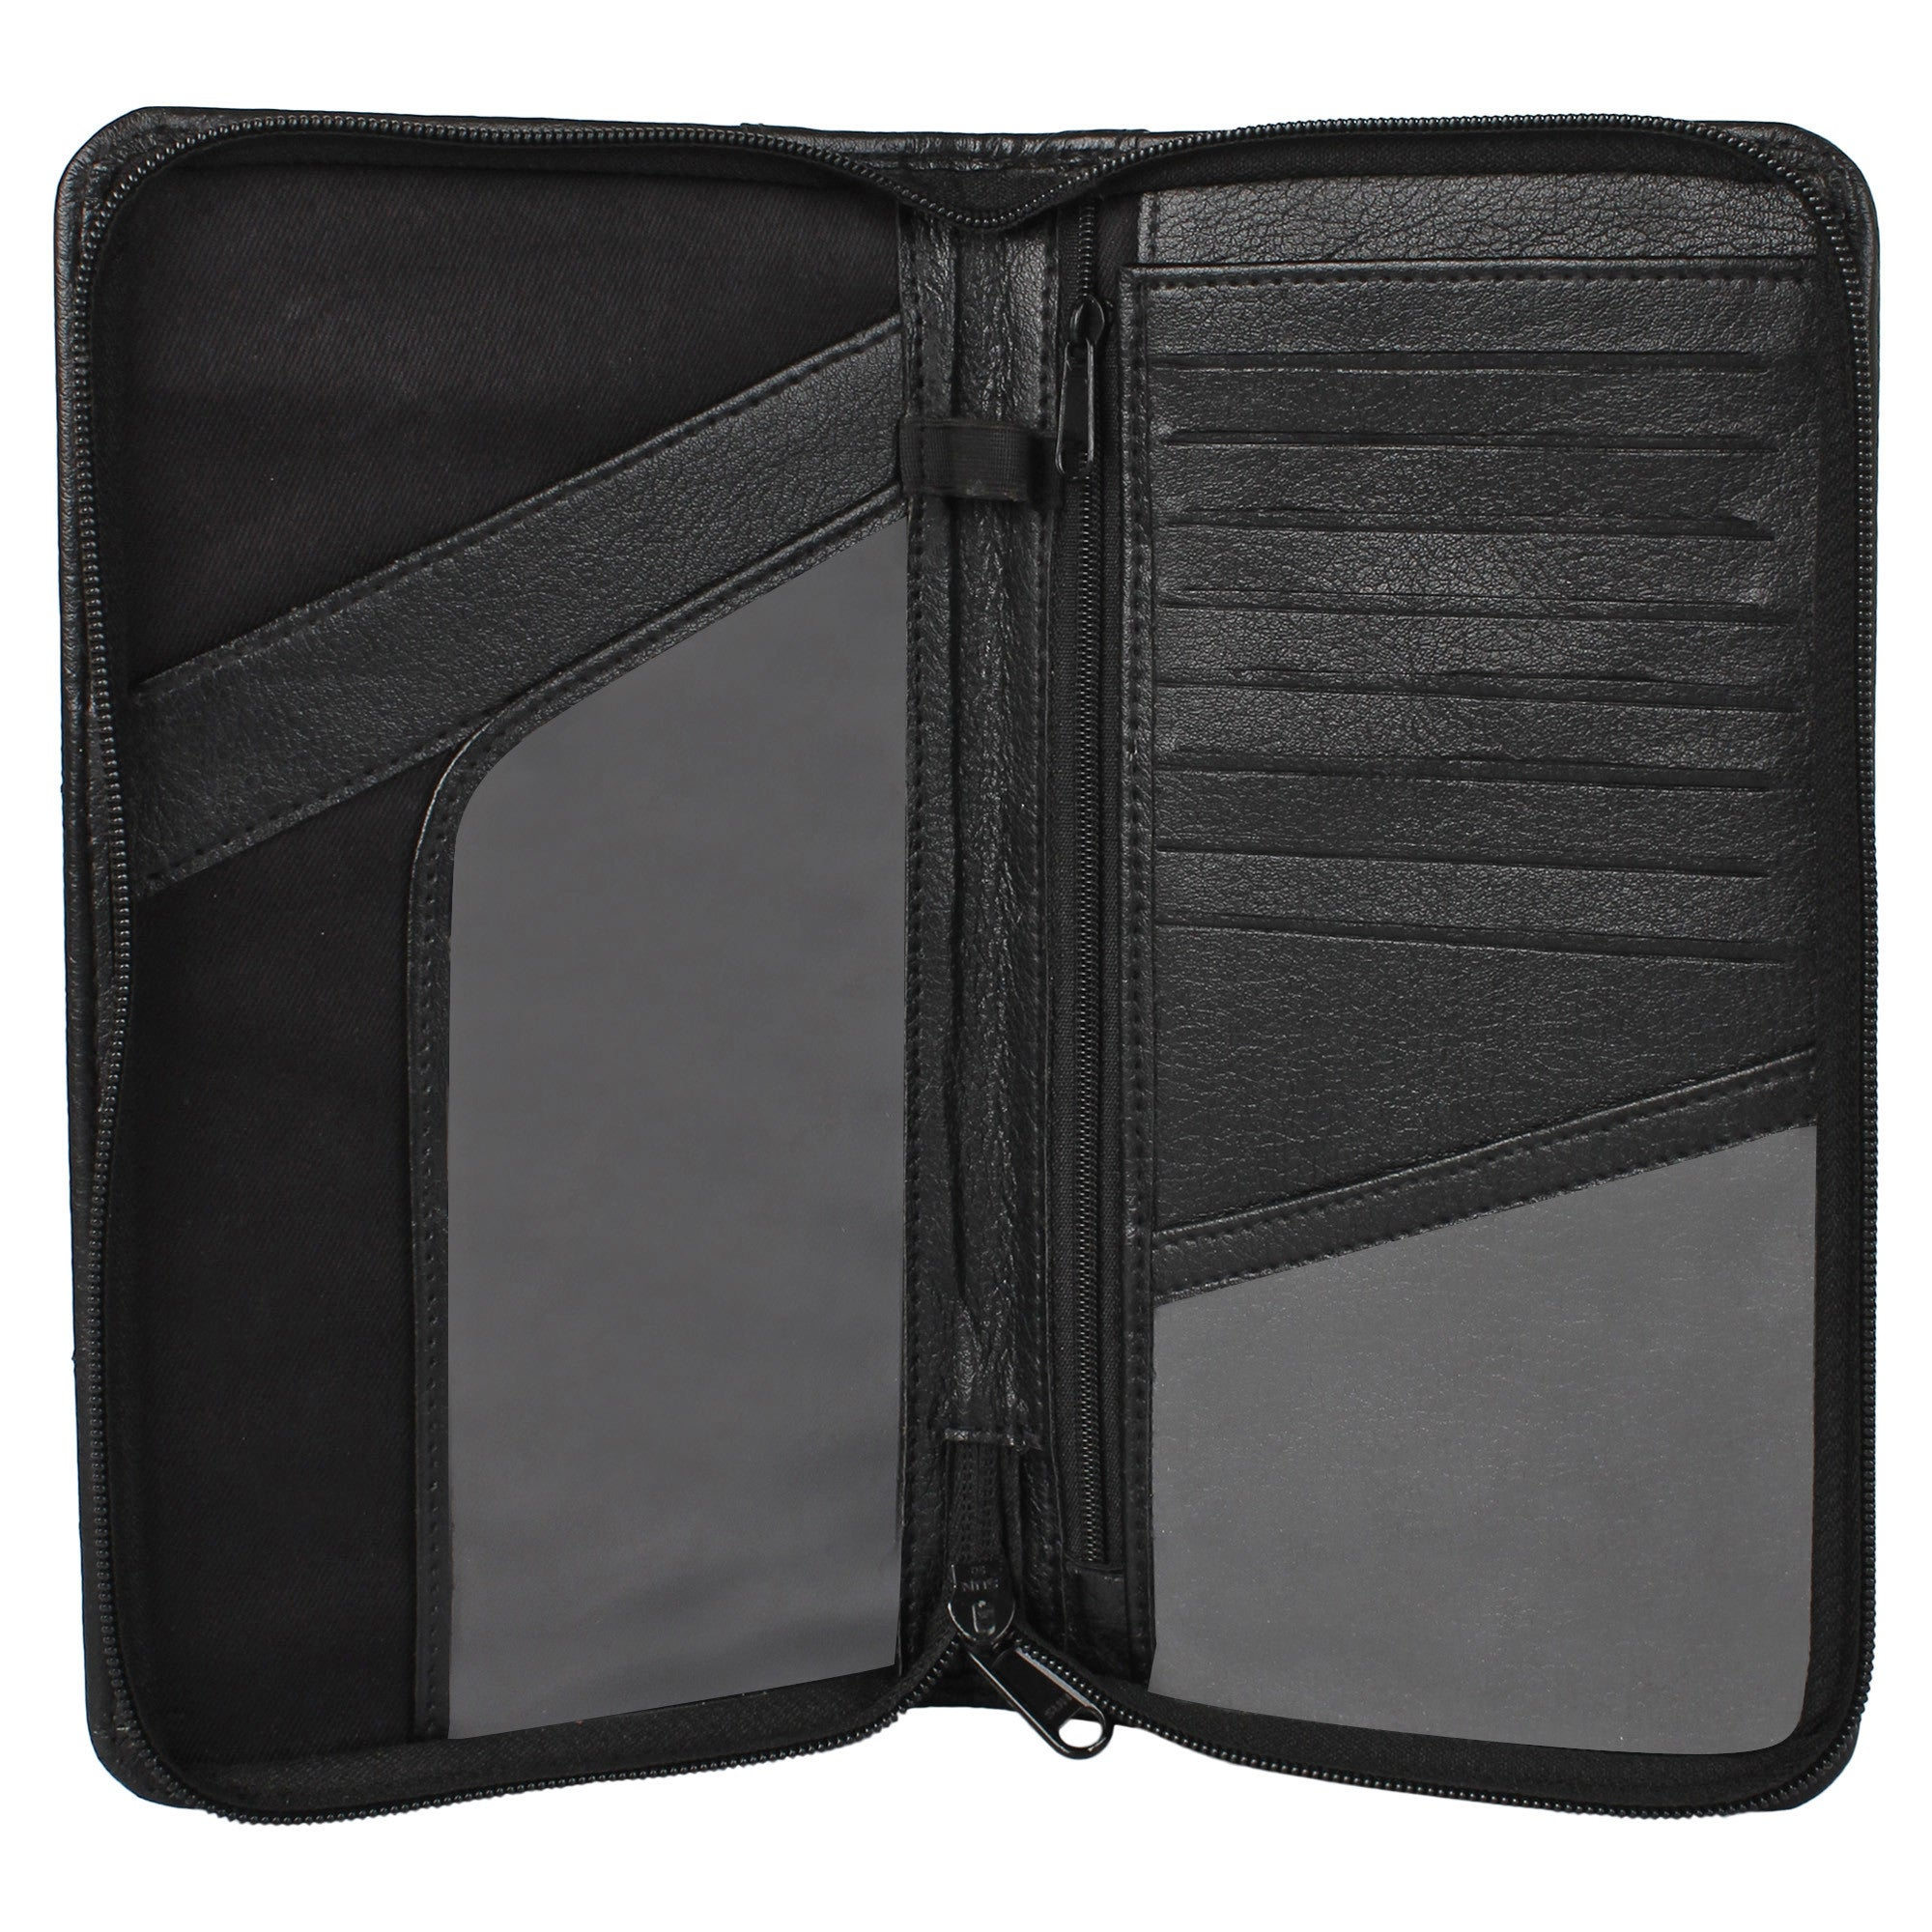 05999f915e4f Ultimate Travel Document Organizer - Vegan Leather (Black) – Hamelin